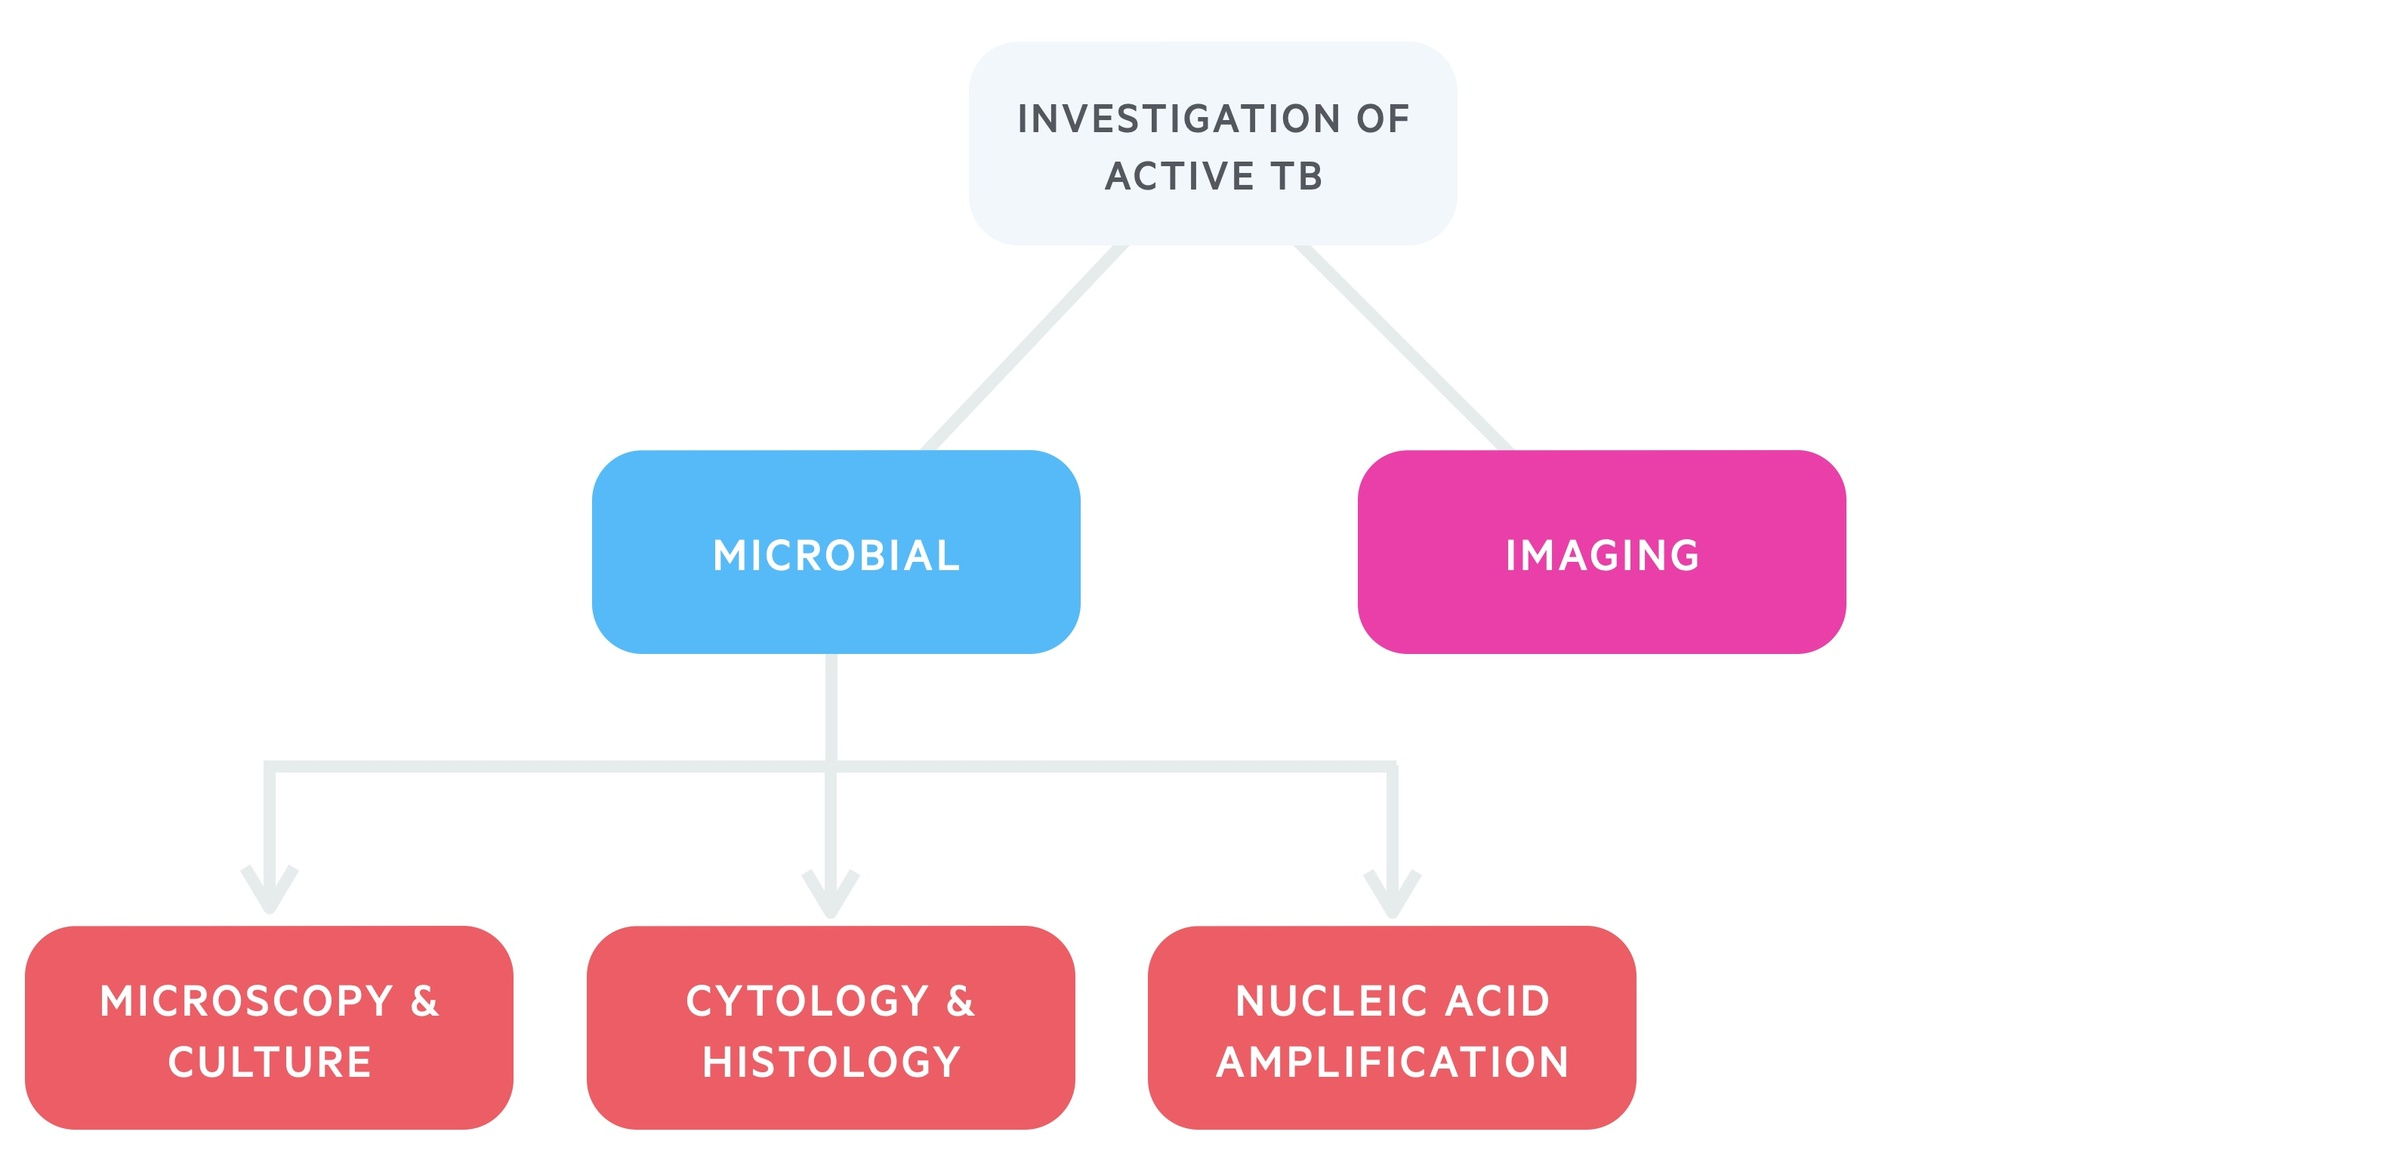 Investigation of active tuberculosis (TB)